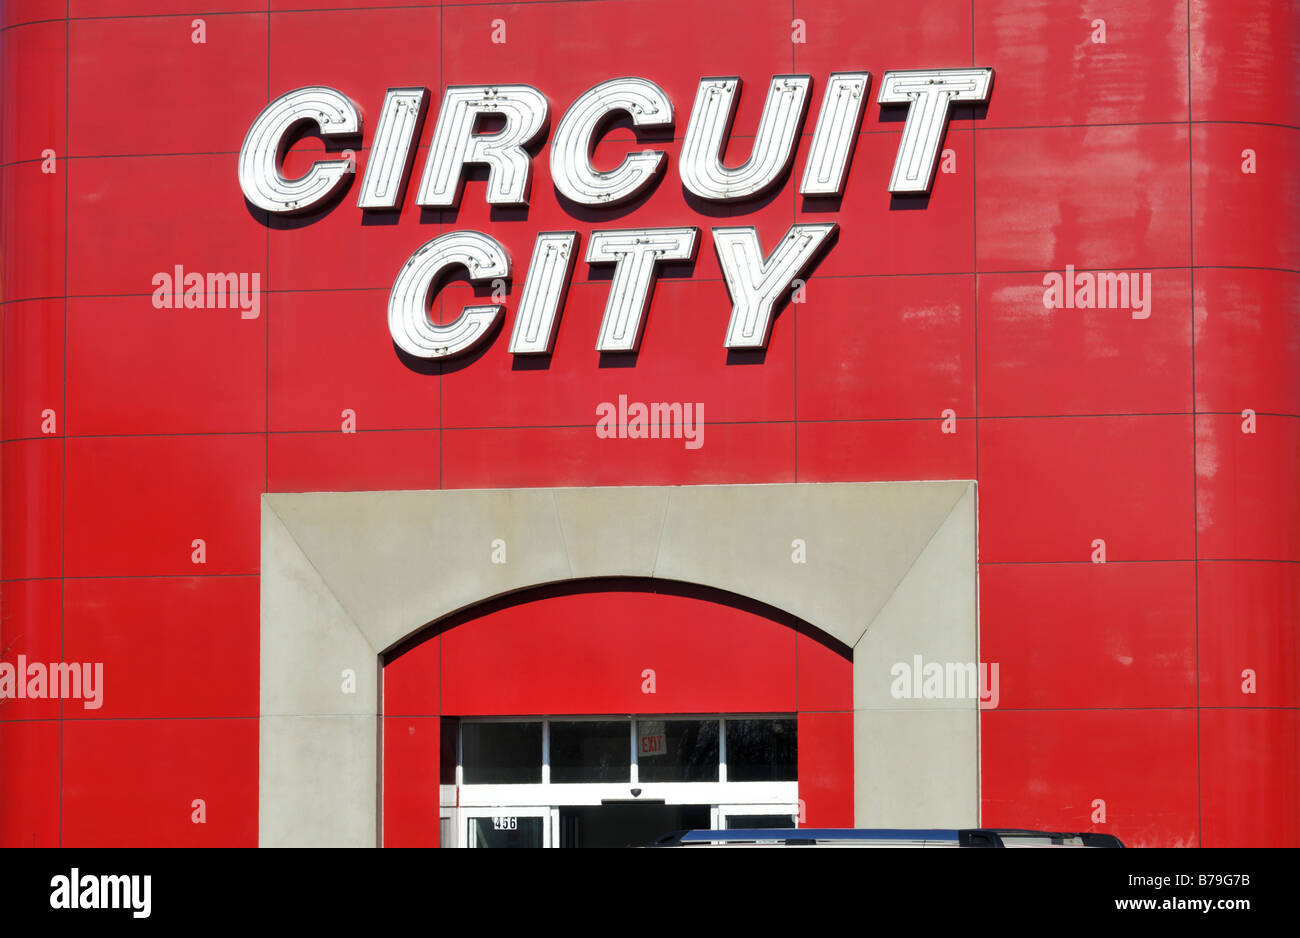 Exterior facade of Circuit City retail chain store showing sign in United States - Stock Image